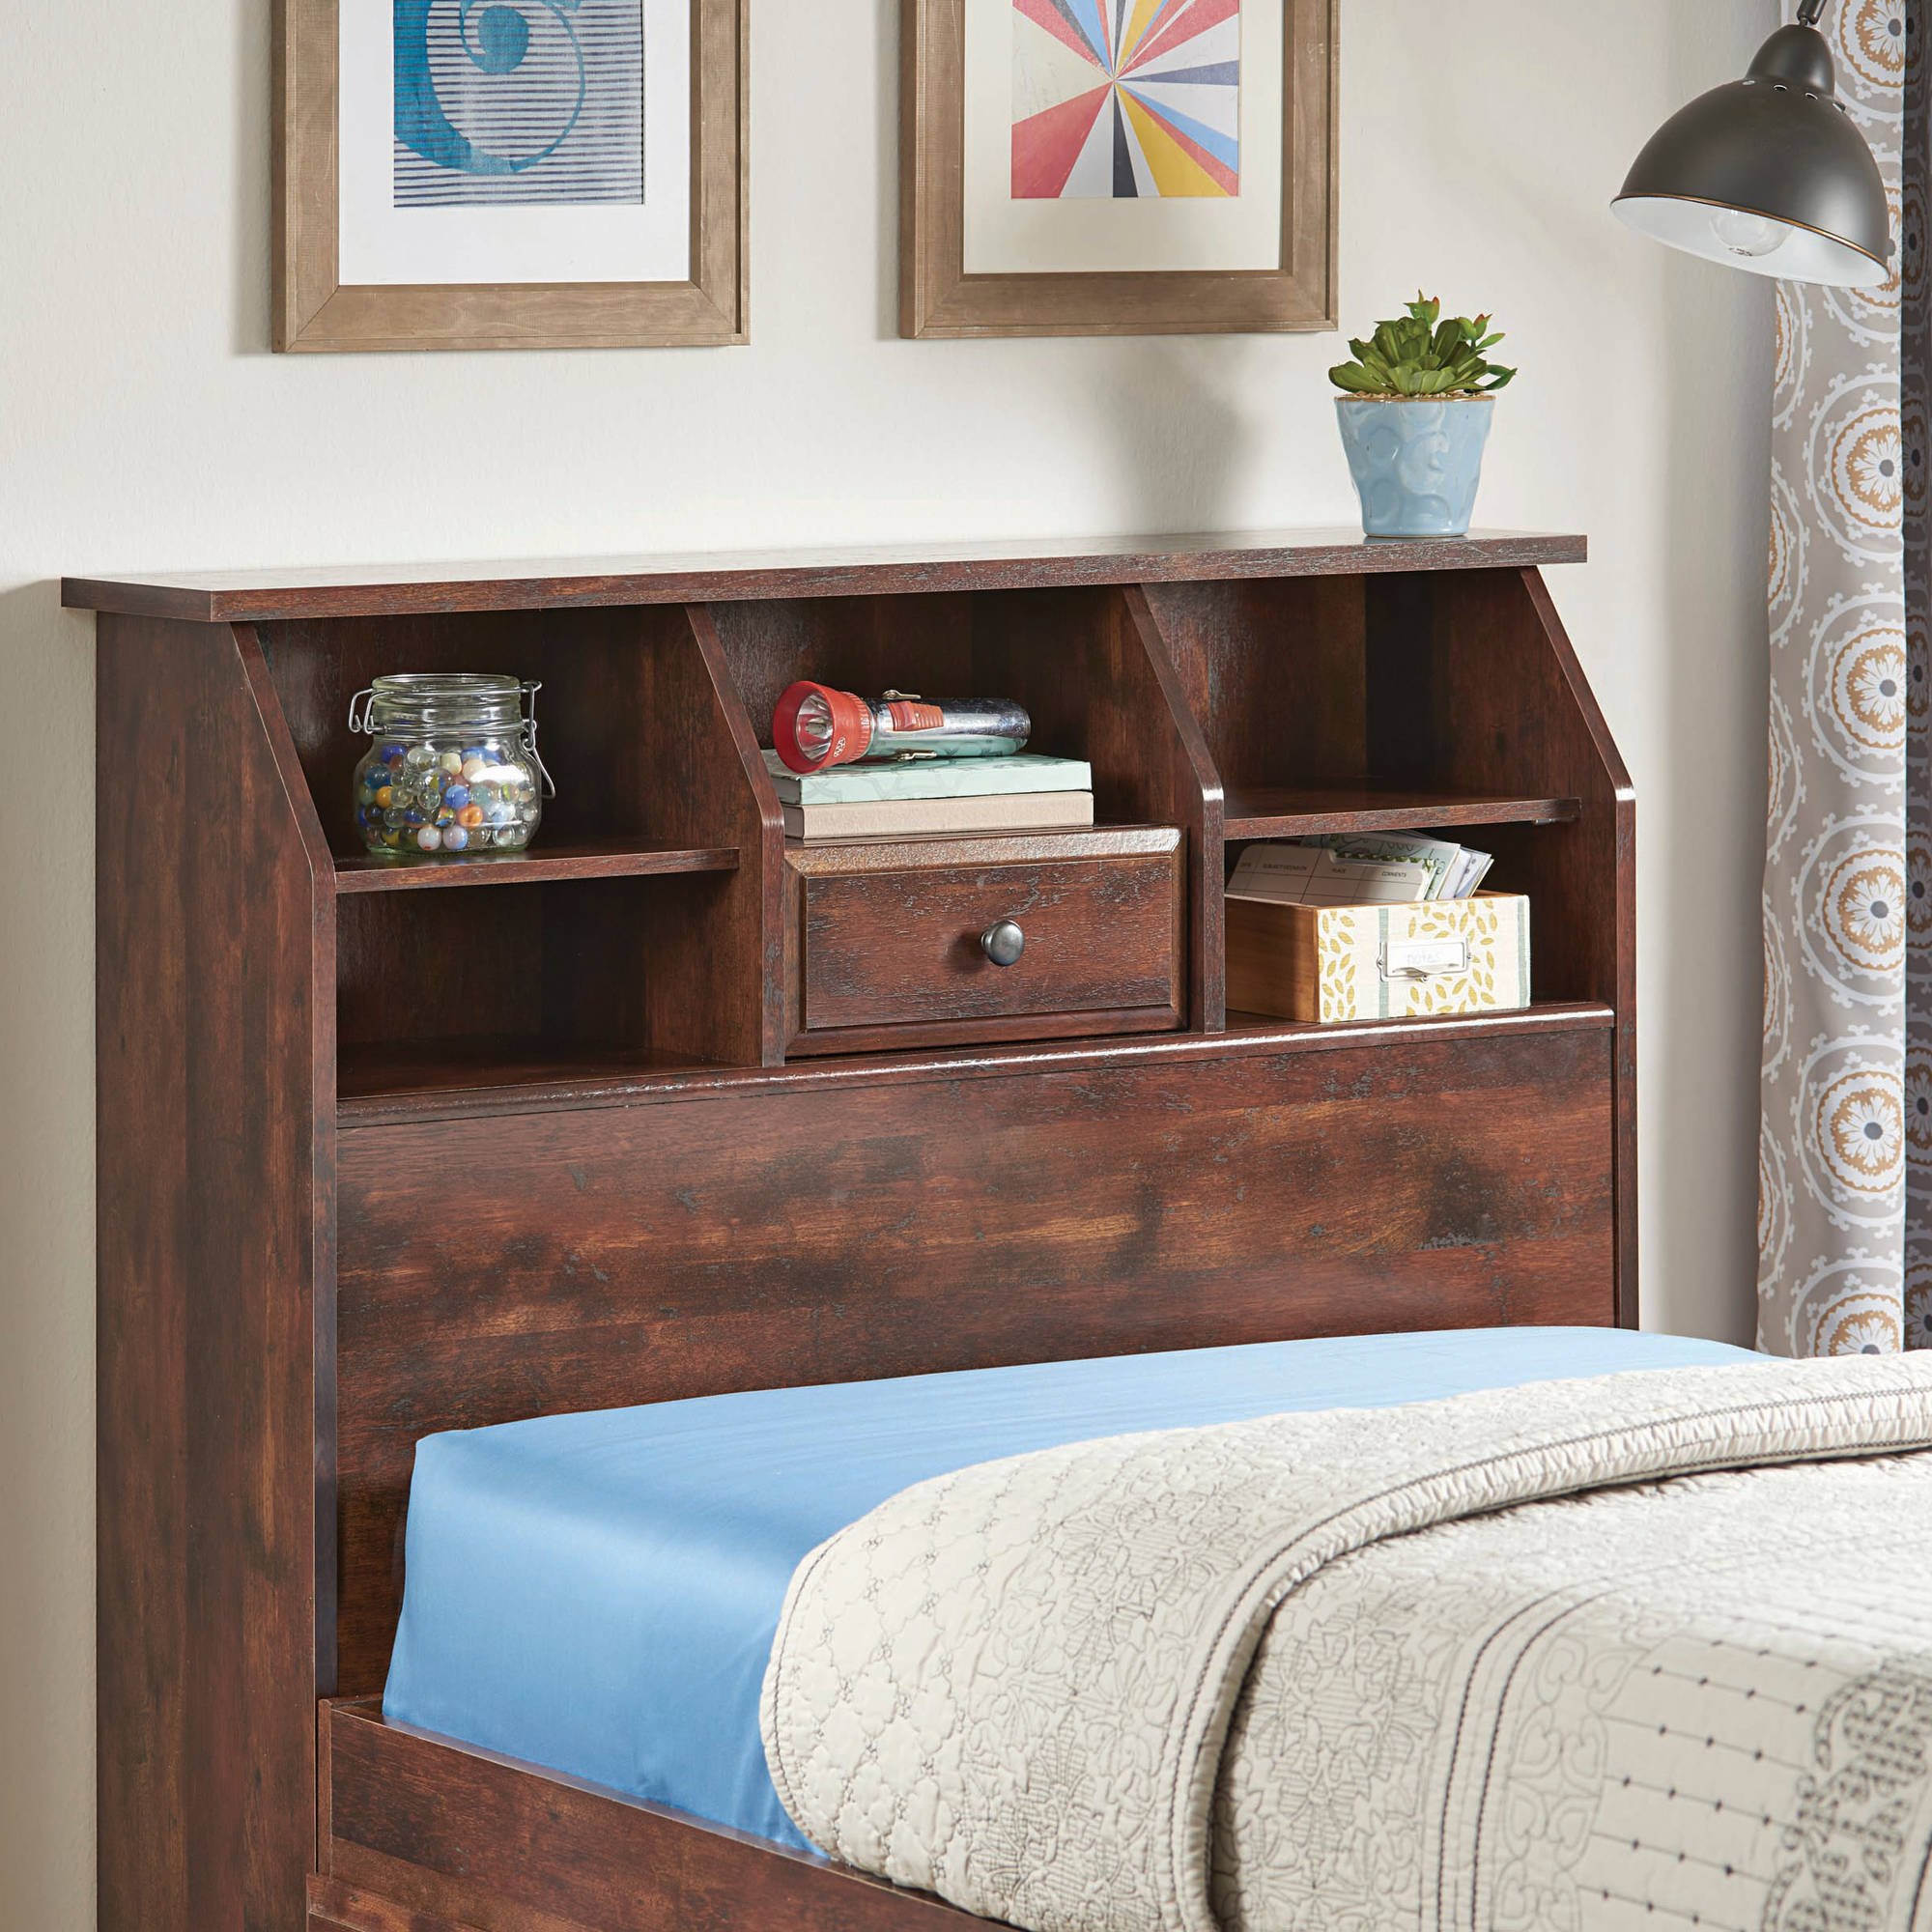 Better Homes & Gardens Leighton Twin Bookcase Headboard, Rustic Cherry Finish